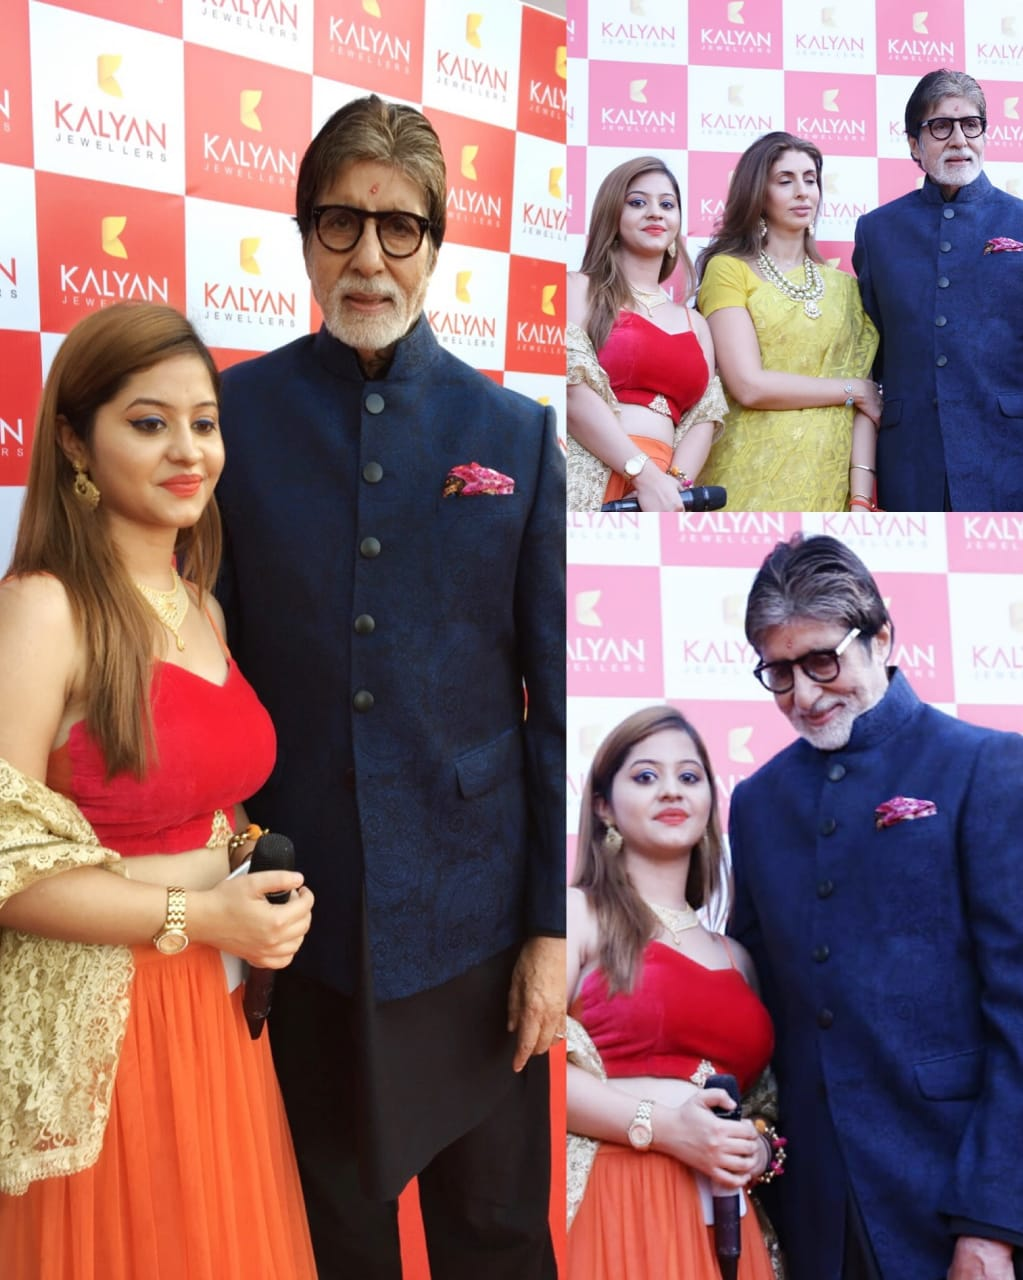 Ruchi with Amitabh Bachchan-Neer Event Management